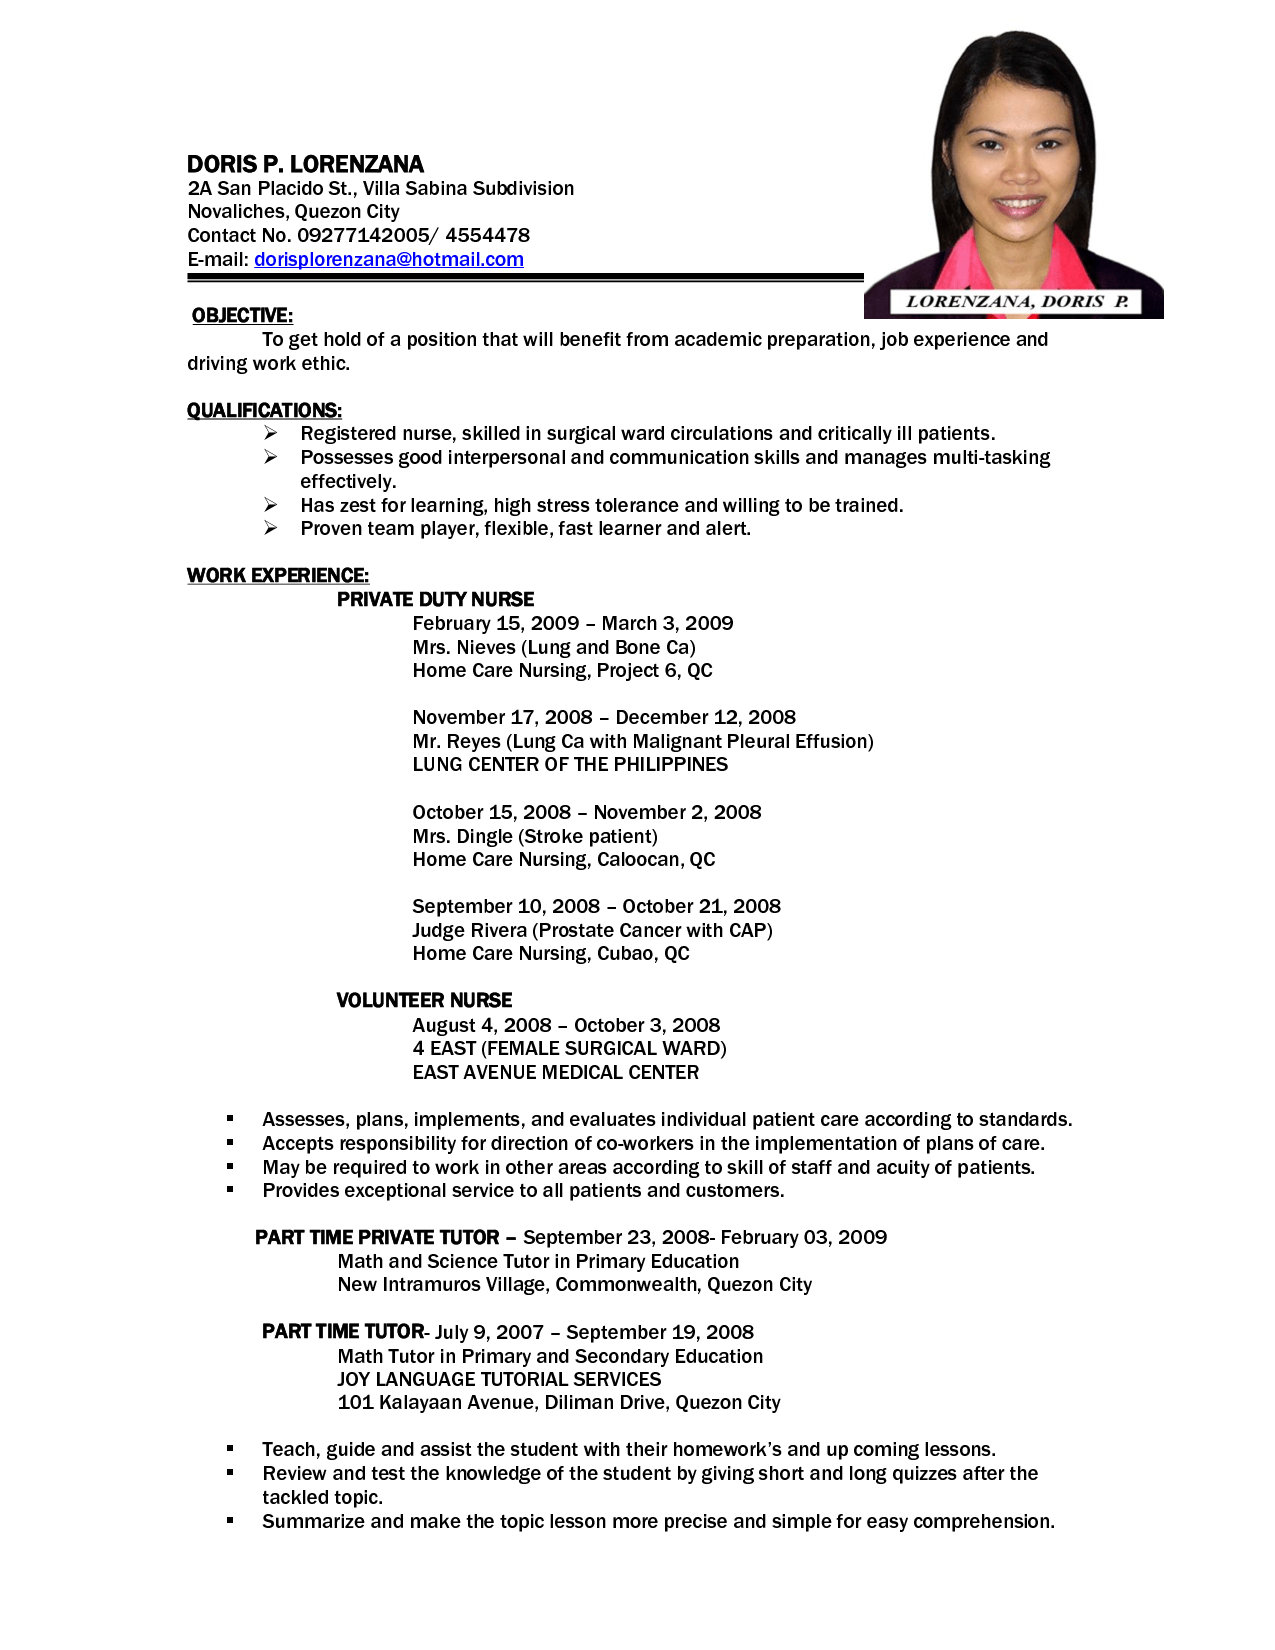 Sample Resume Of Nursing Applicant 100 Original Papers